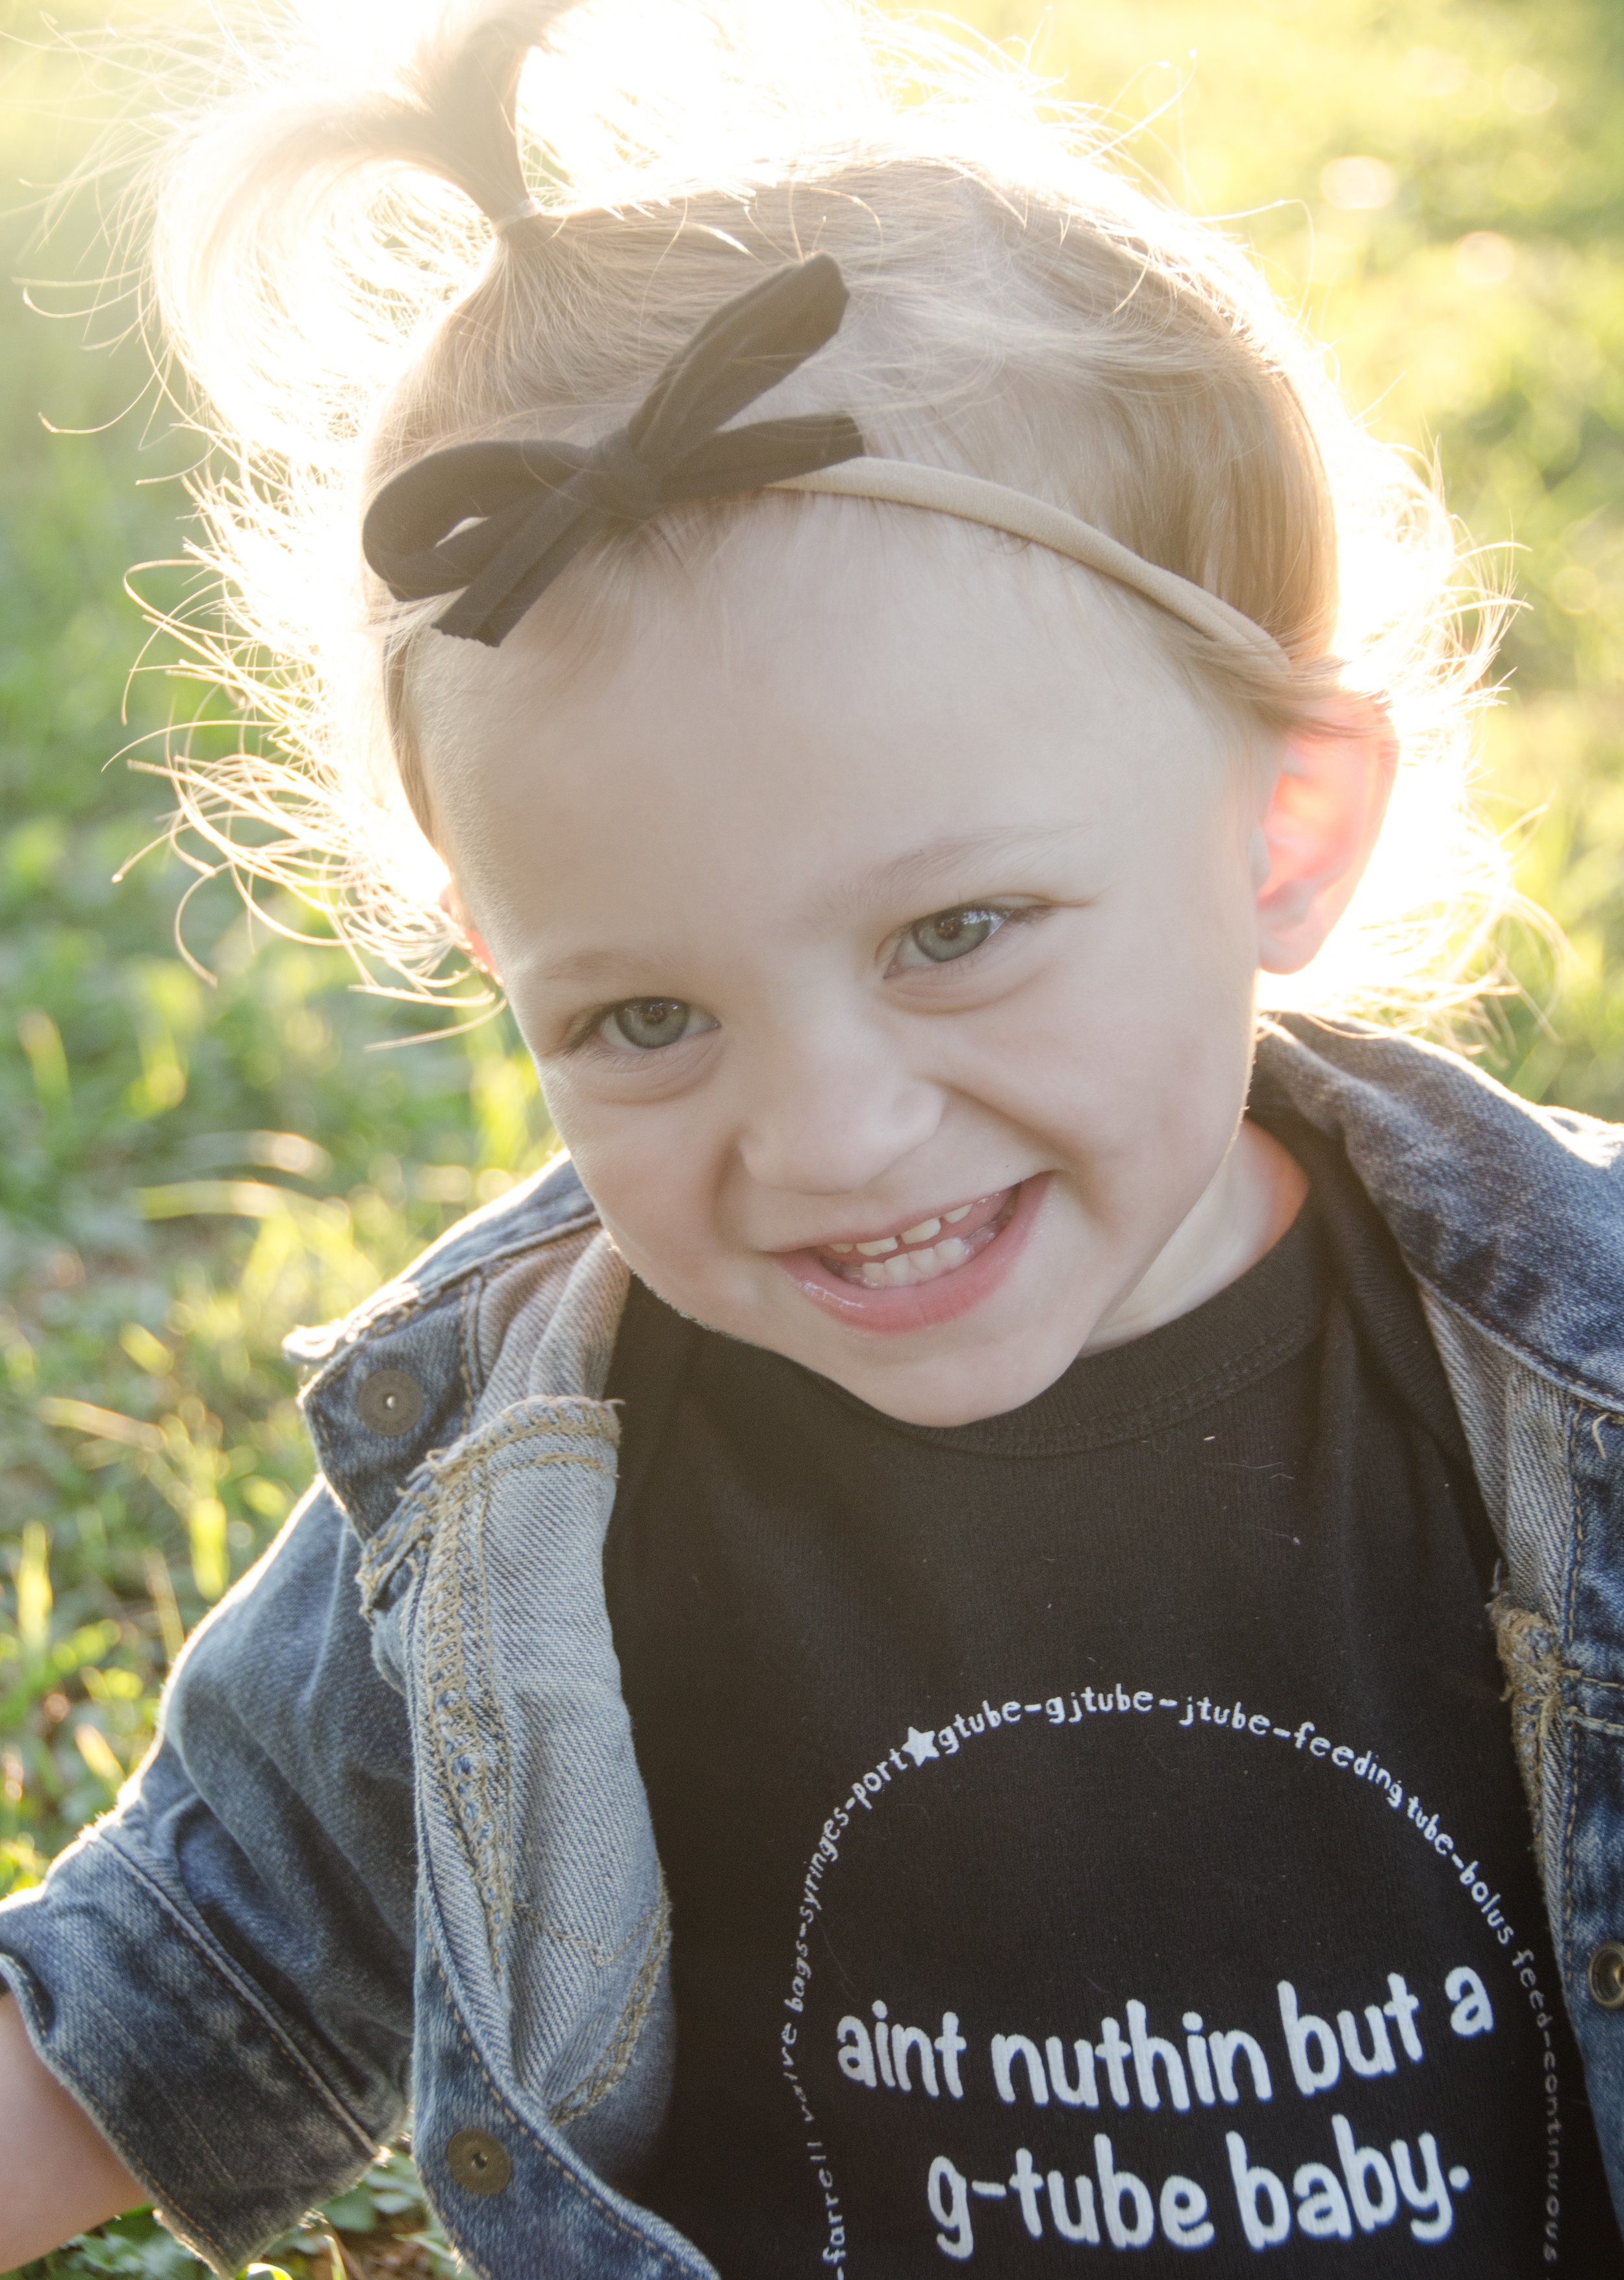 Peculiarly Perfect - A clothing line designed for all kids, but they also have two specific collections designed to educate and spread awareness about various special needs and diseases. Peculiarly Perfect is donating 30% of proceeds during the month of September when code NICULOVE is used! Adeline is wearing their